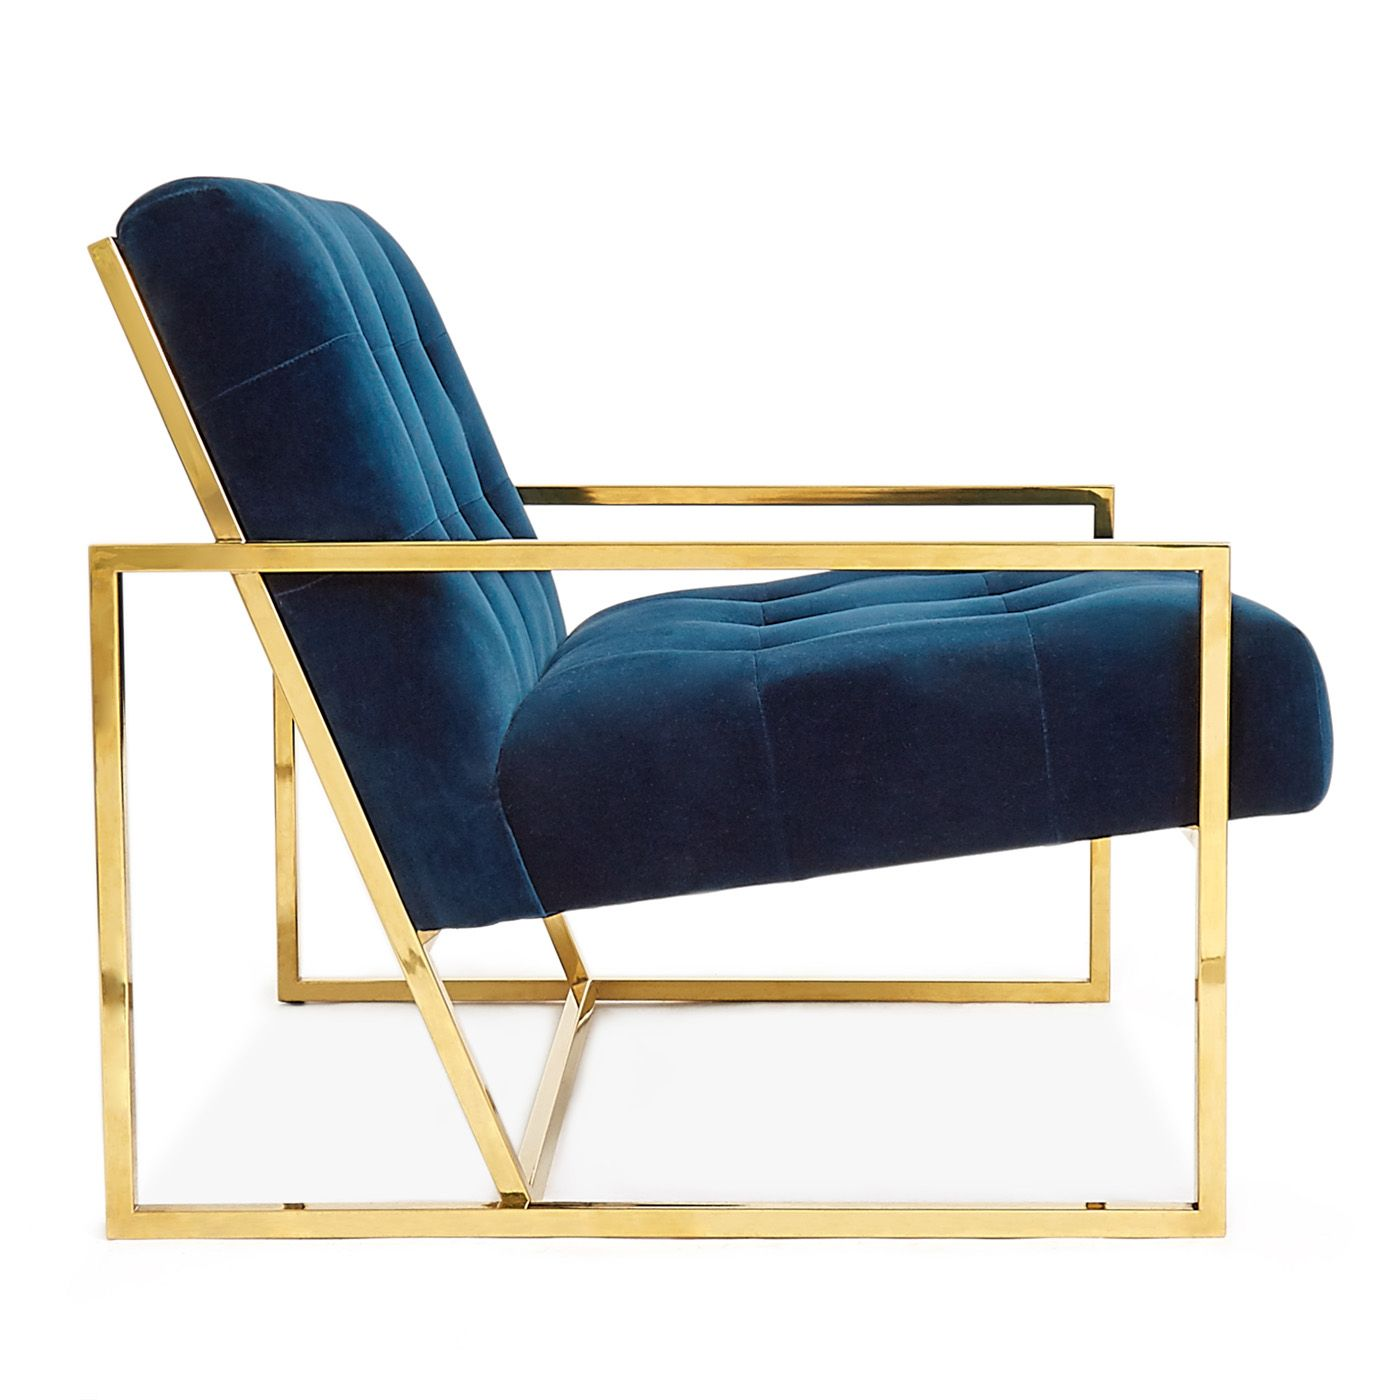 jonathan adler goldfinger lounge chair interiors decorum pared down geometry in polished brass meets swanky navy velvet in our goldfinger